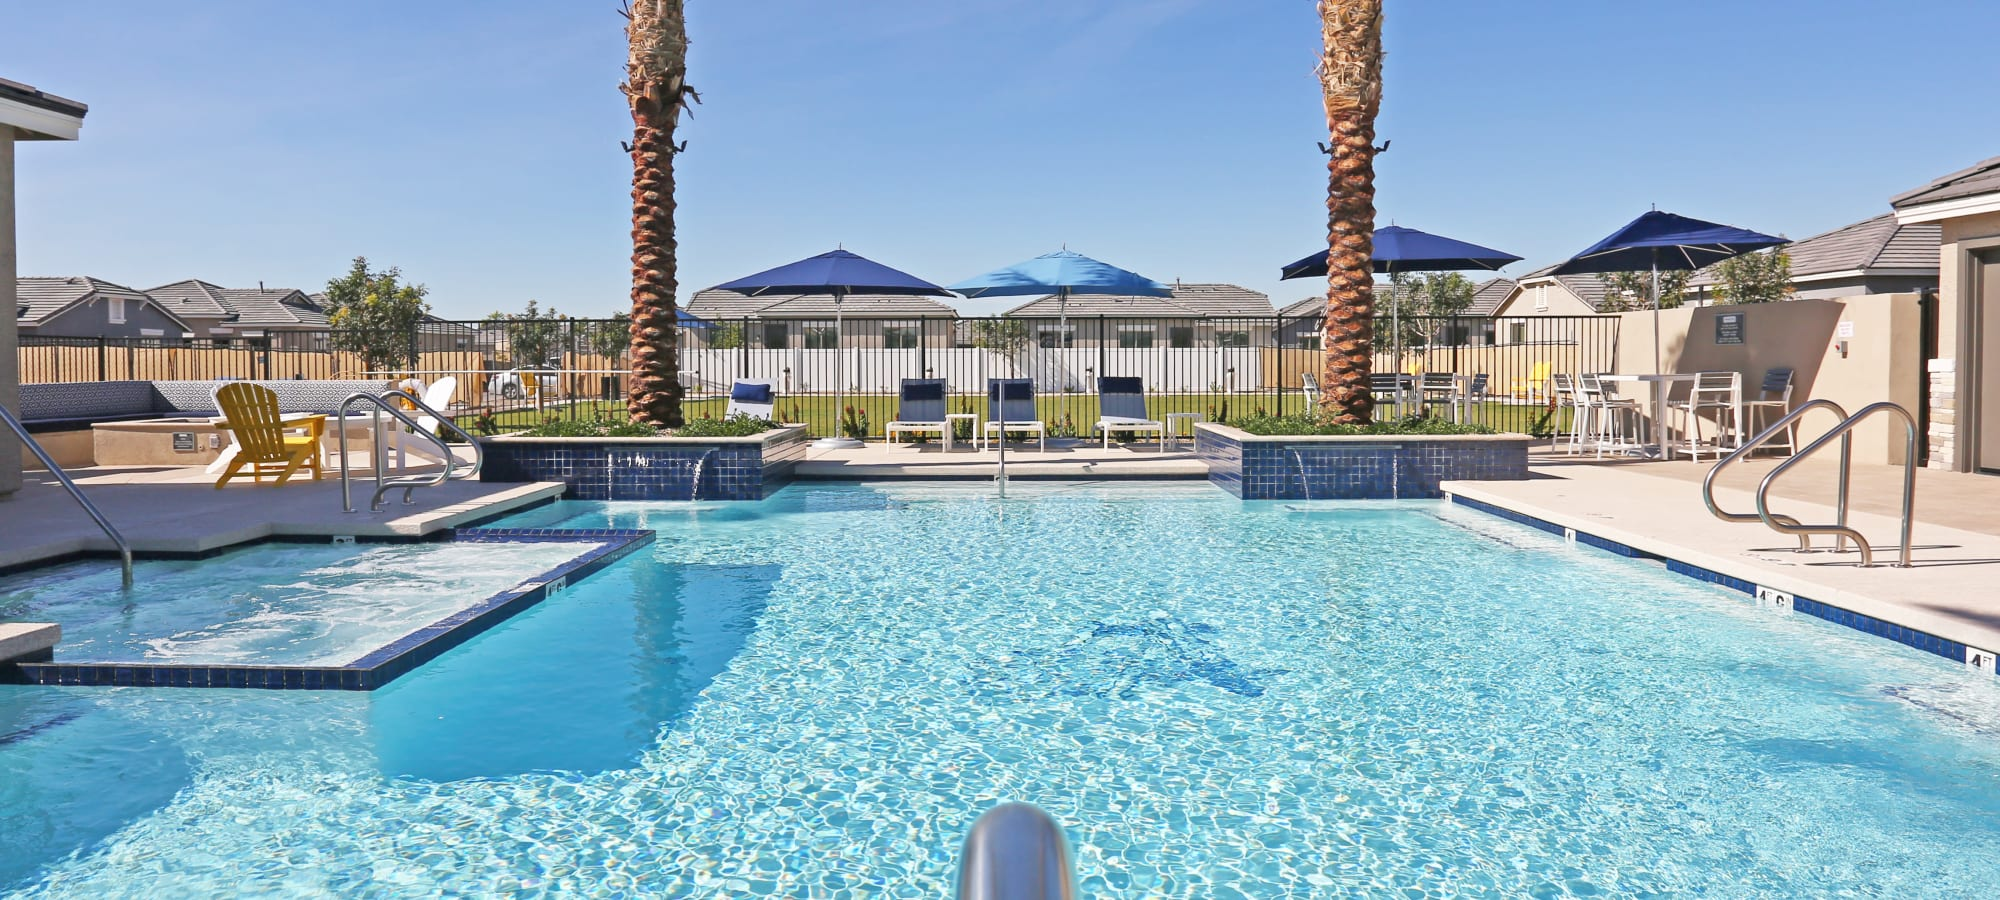 Swimming pool on another beautiful day at Christopher Todd Communities On Mountain View in Surprise, Arizona